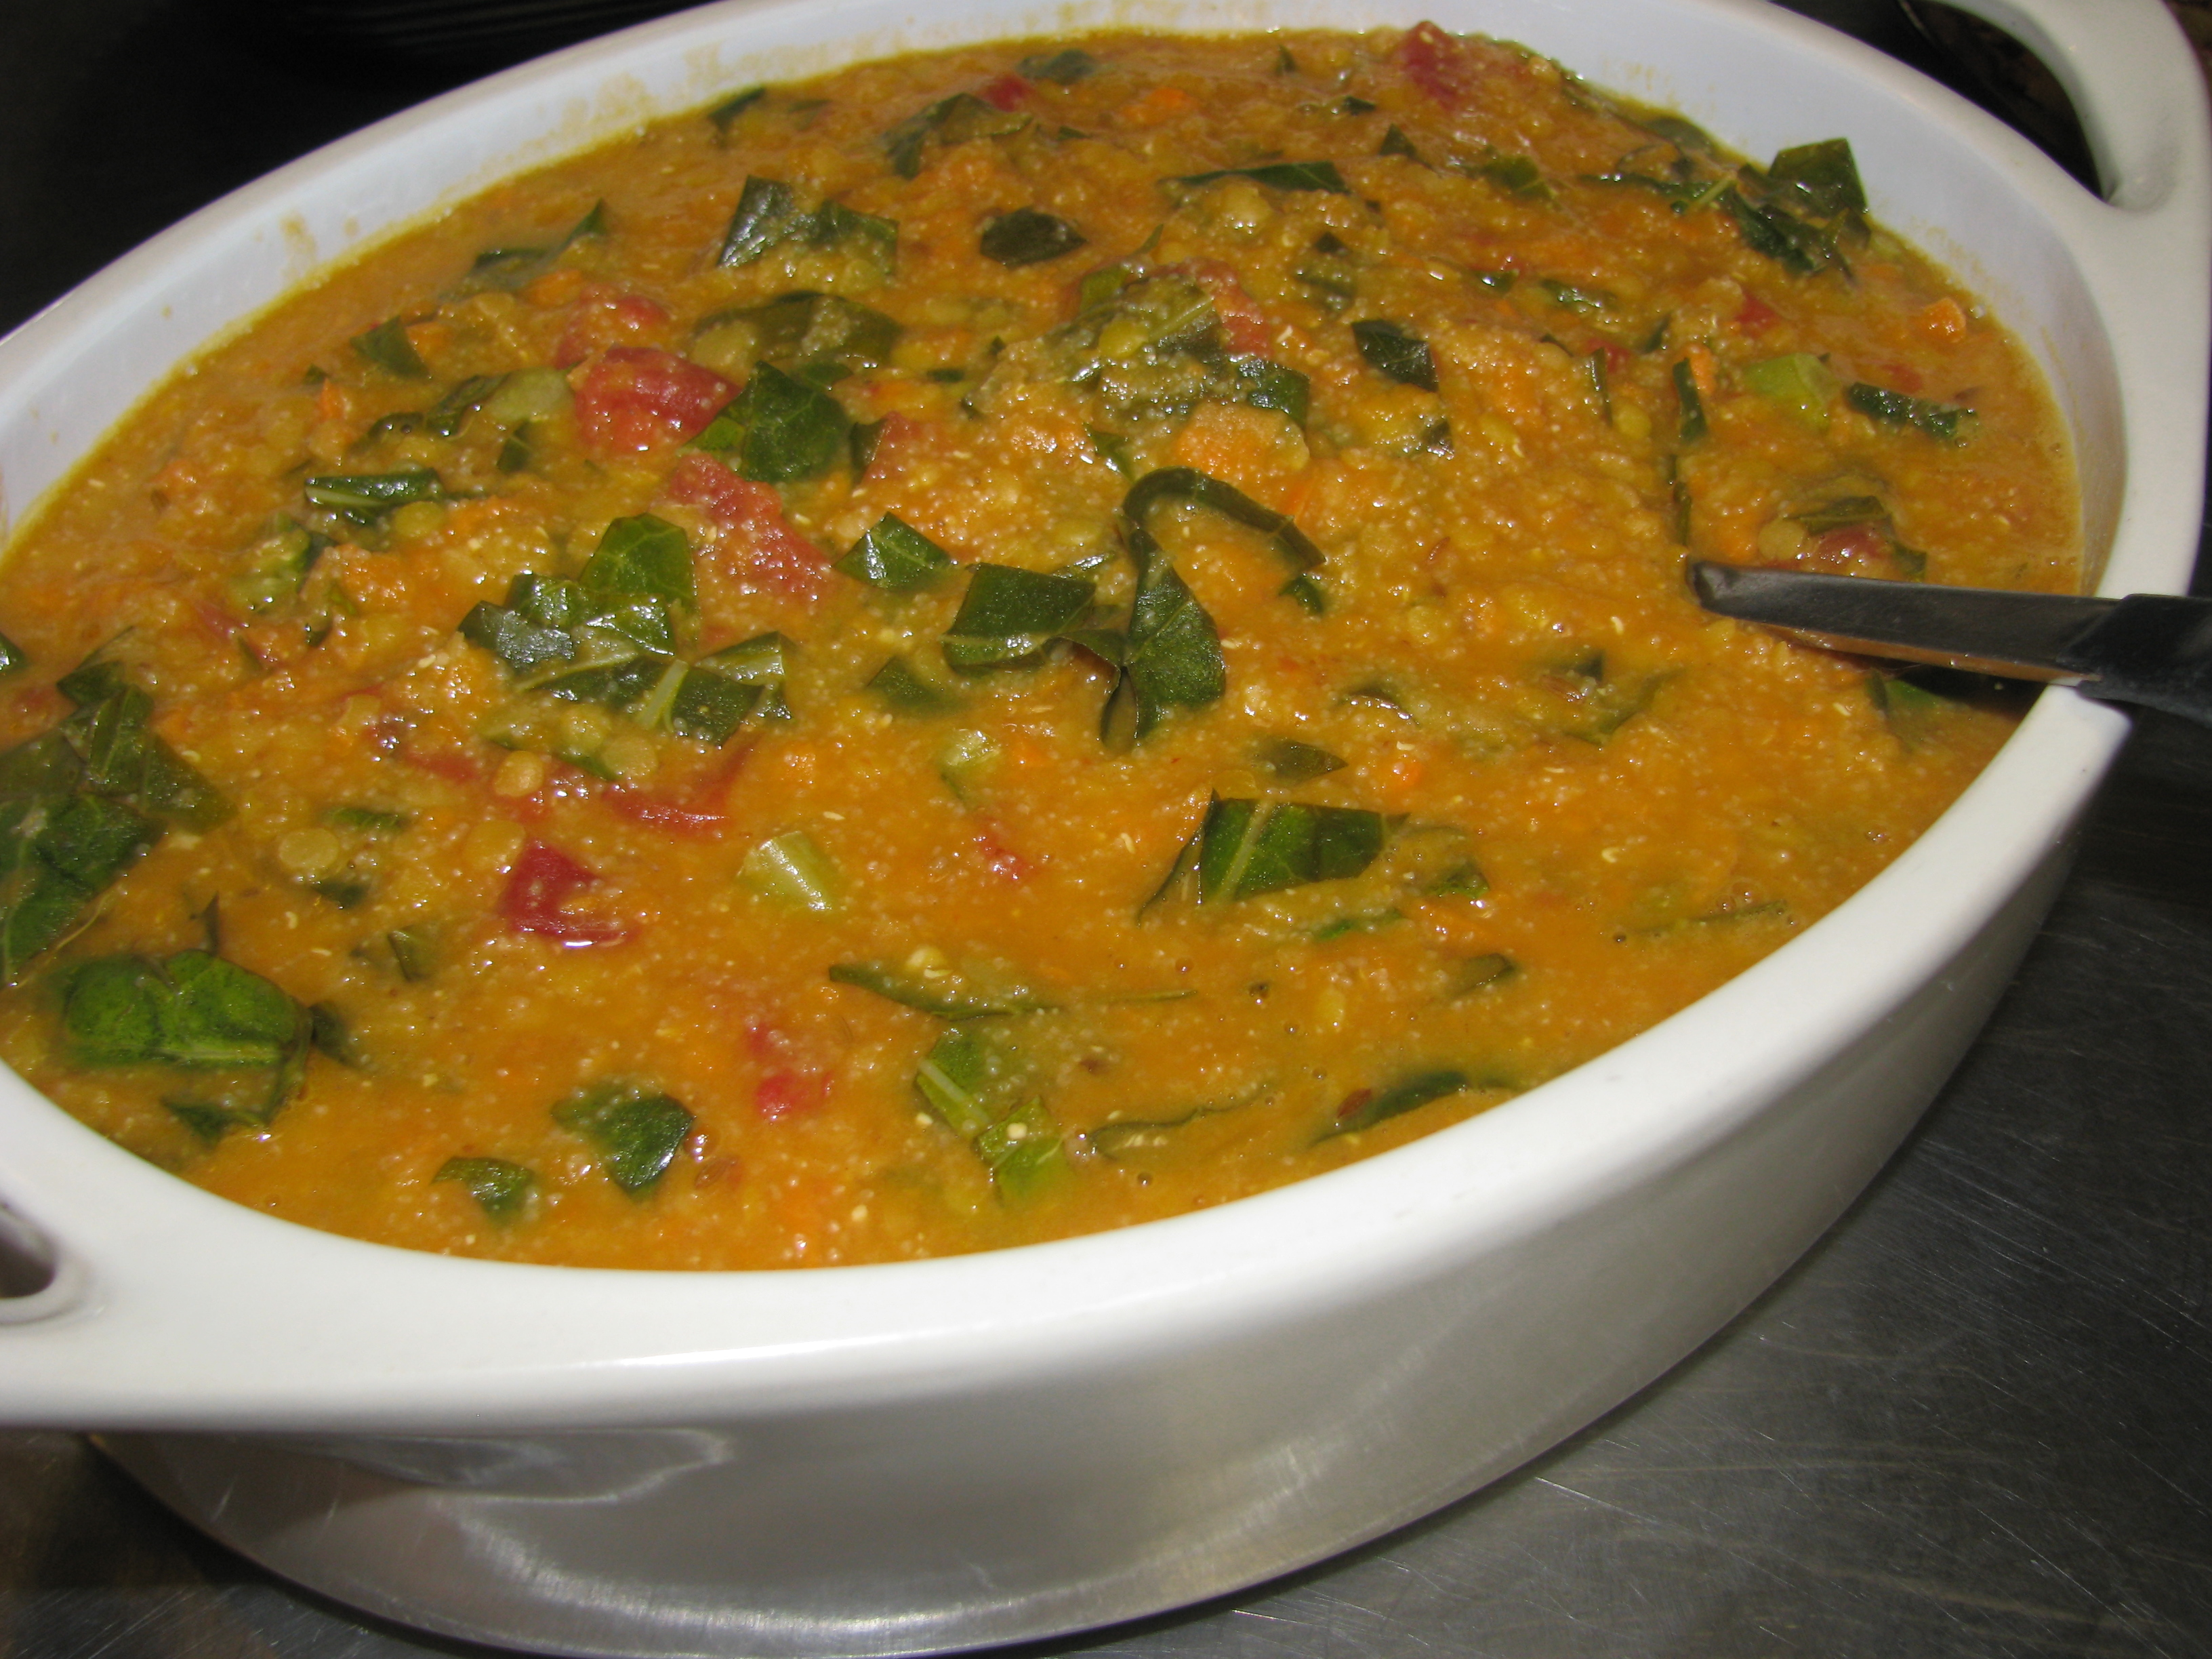 AFRICAN-SPICED COCONUT TEFF & RED LENTIL STEW WITH COLLARDS & YAMS